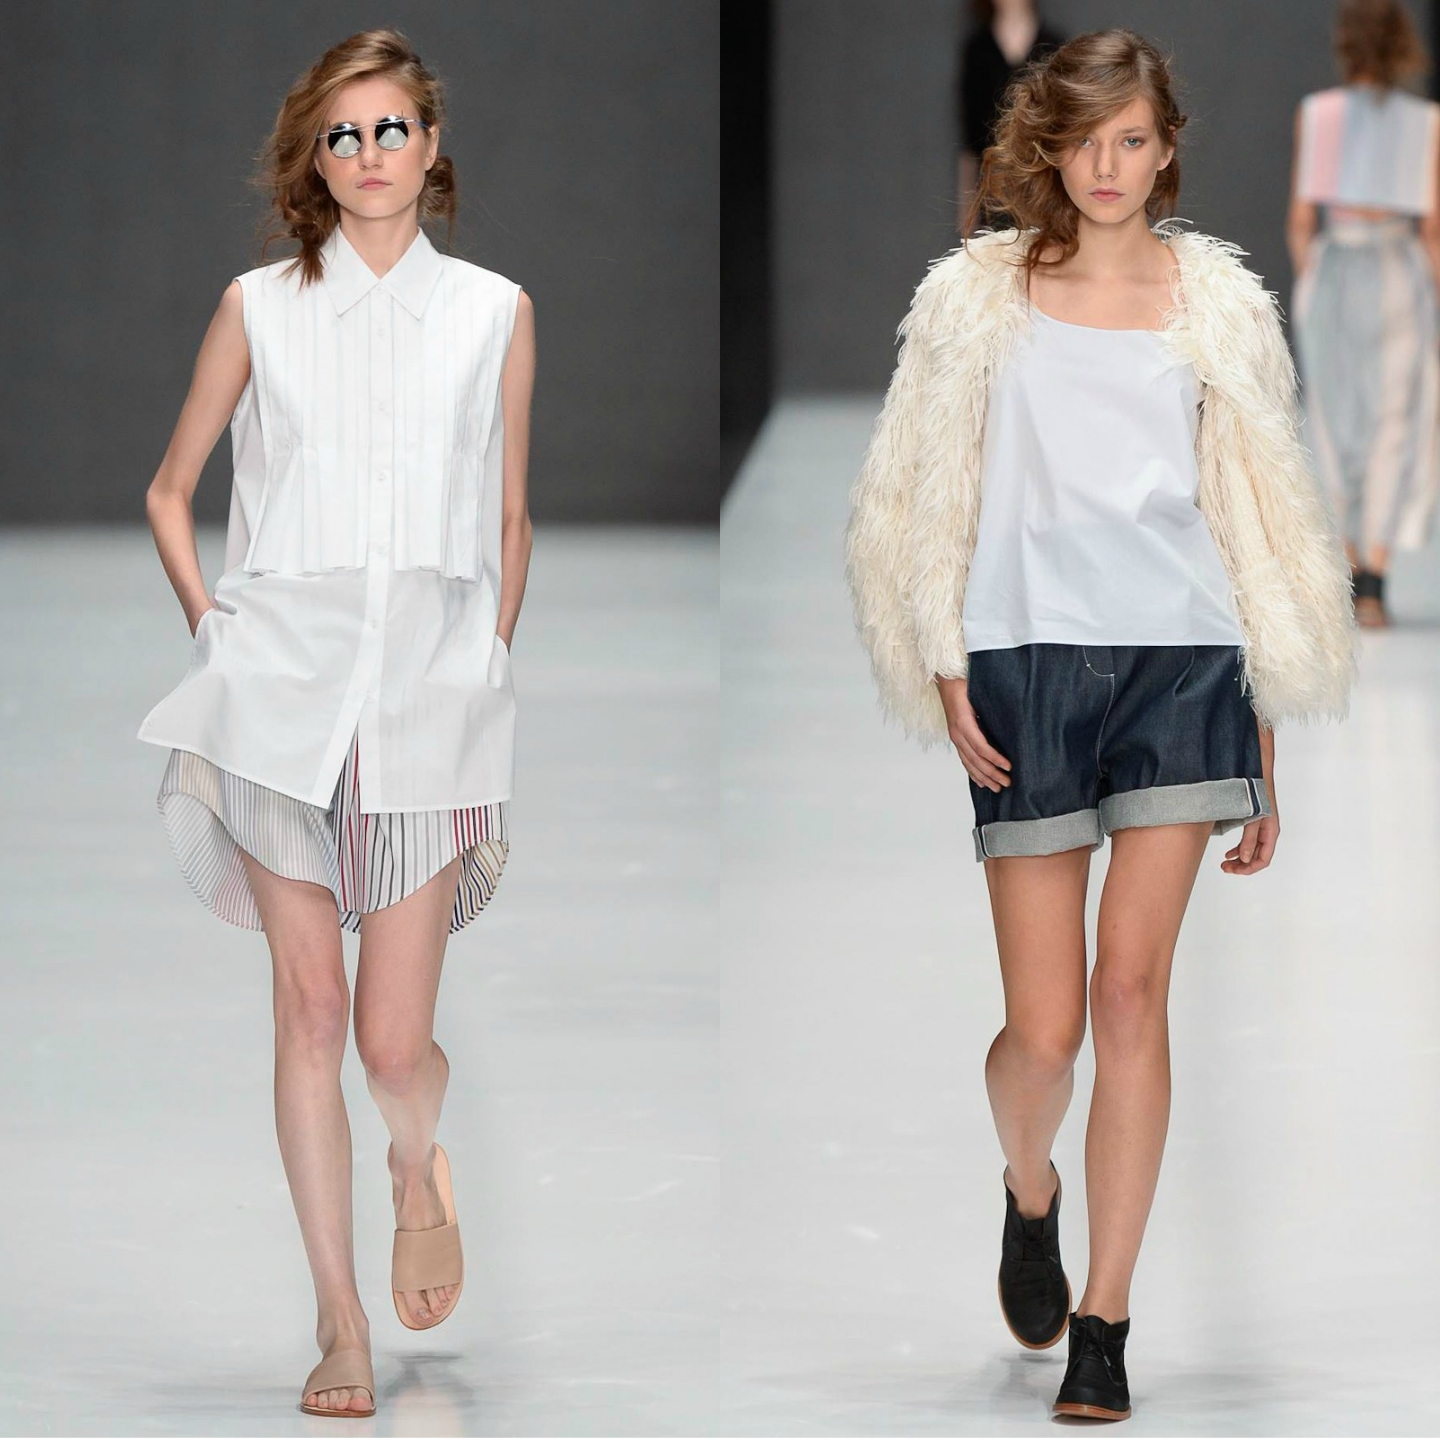 Eniwhere Fashion - MBFW Moscow - Favorite runways